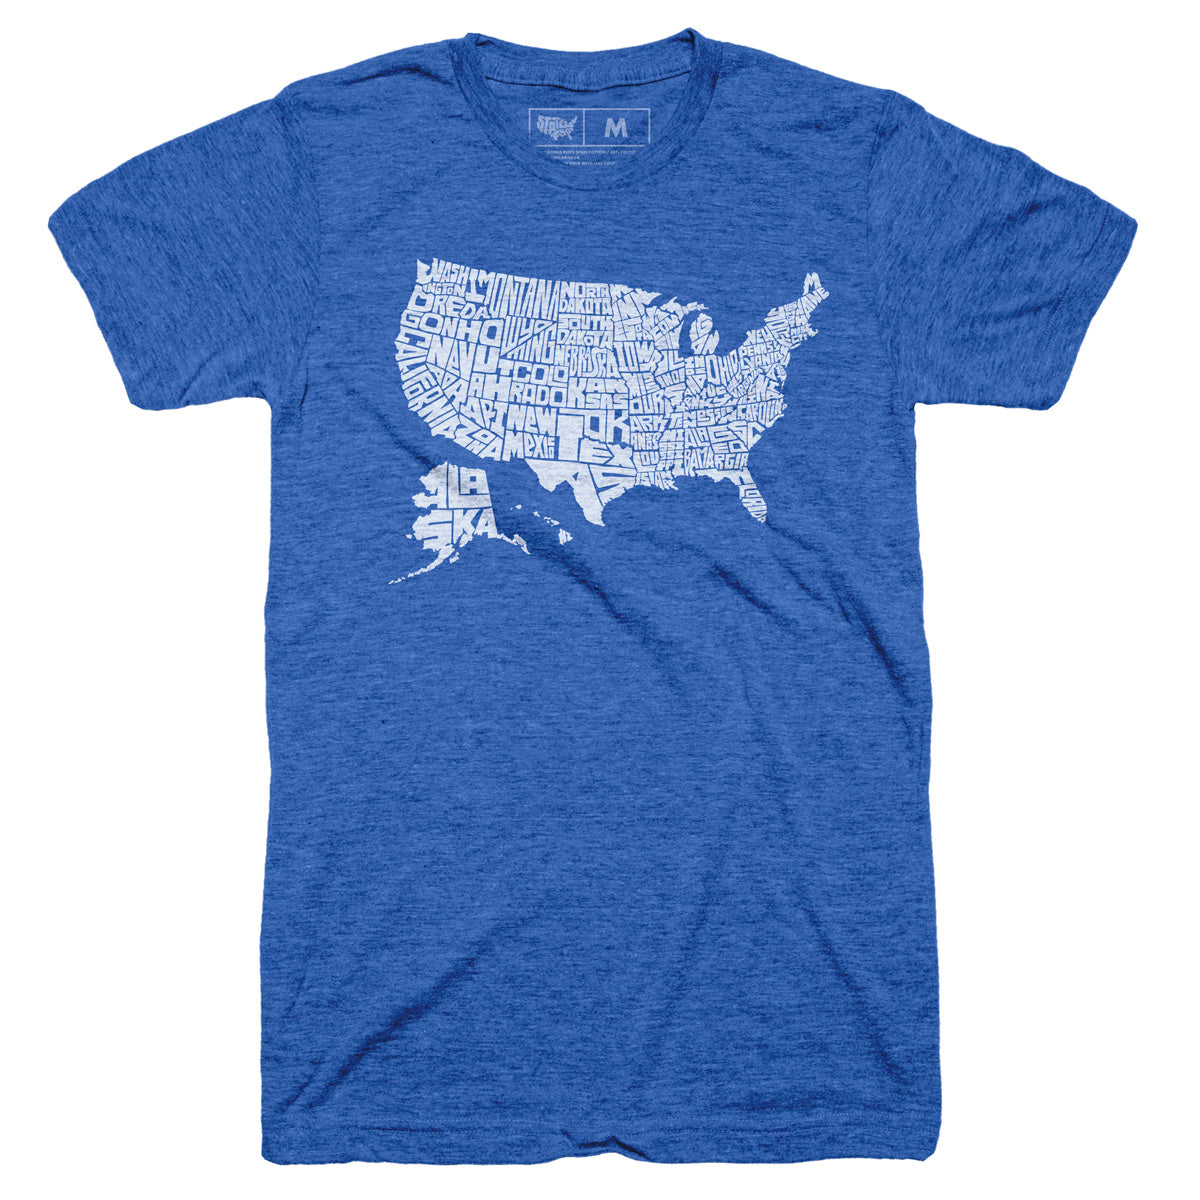 USA Map T-shirt United States Map Blue on blue honduras map, blue map of the world, blue israel map, blue denmark map, blue japan map, blue international map, blue namibia map, blue florida, blue nevada map, blue kentucky, blue state flags, blue usa map, blue africa map, blue louisiana, blue legend, blue us map, blue south america map, new york state congressional districts map, blue china map, blue virginia,